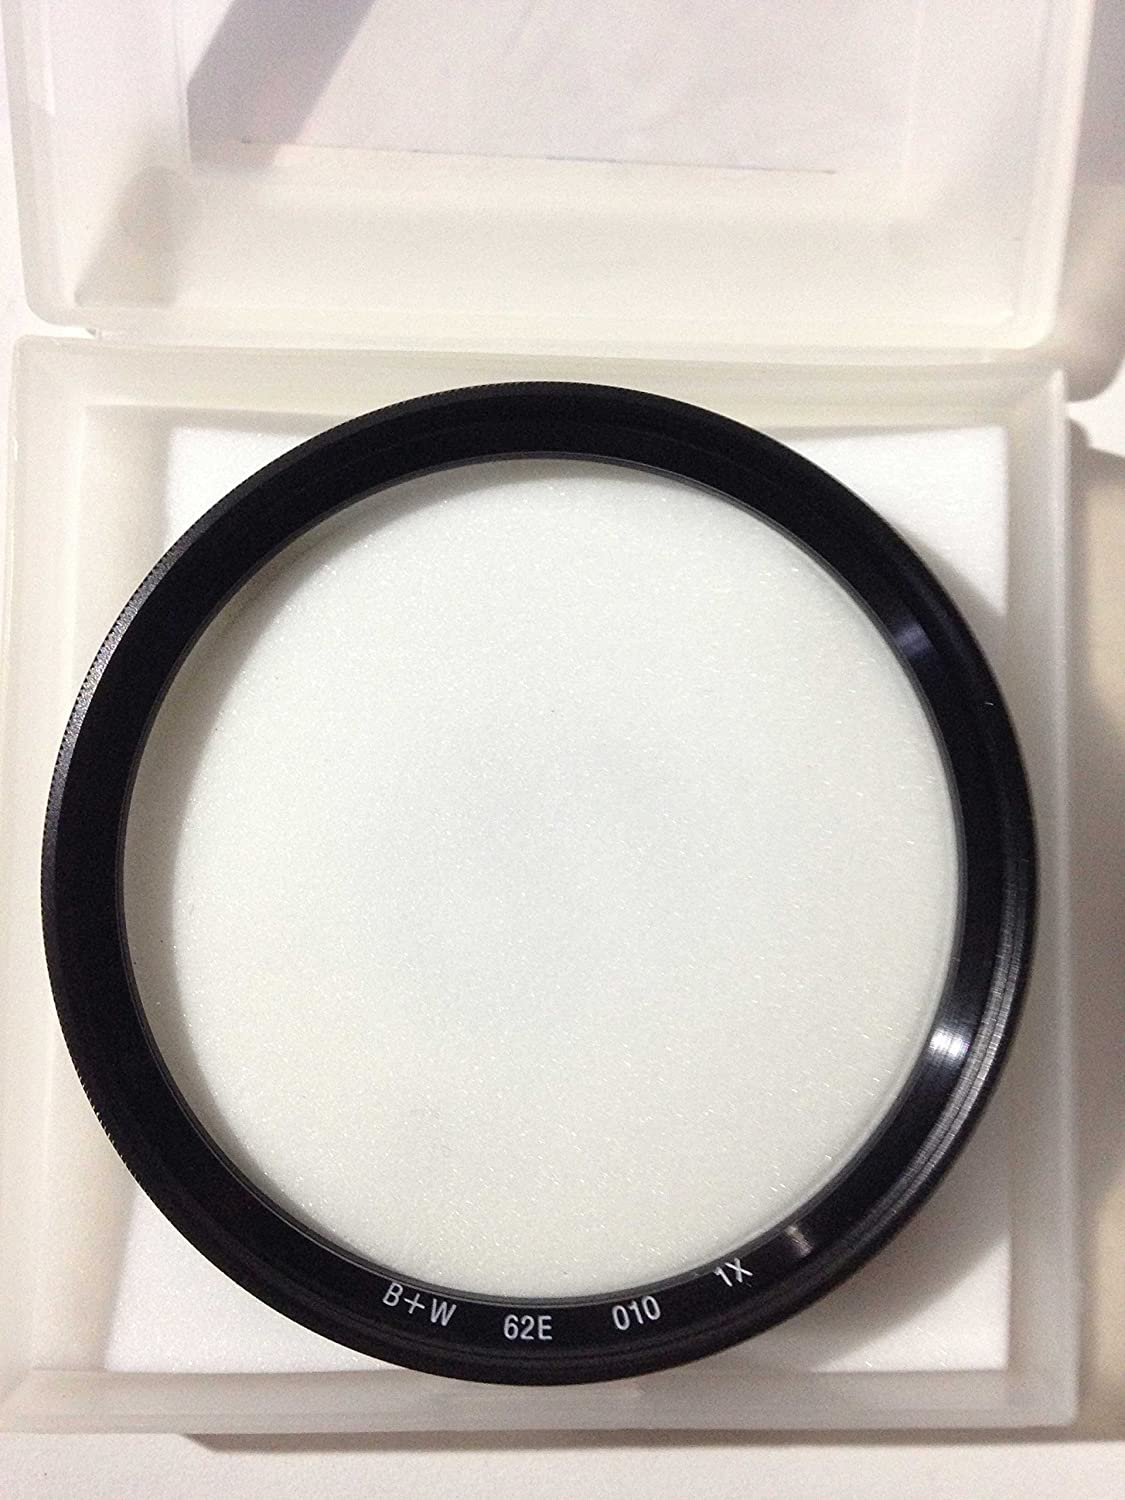 B+W 62mm UV 010 Filter New F-PRO Made in Germany